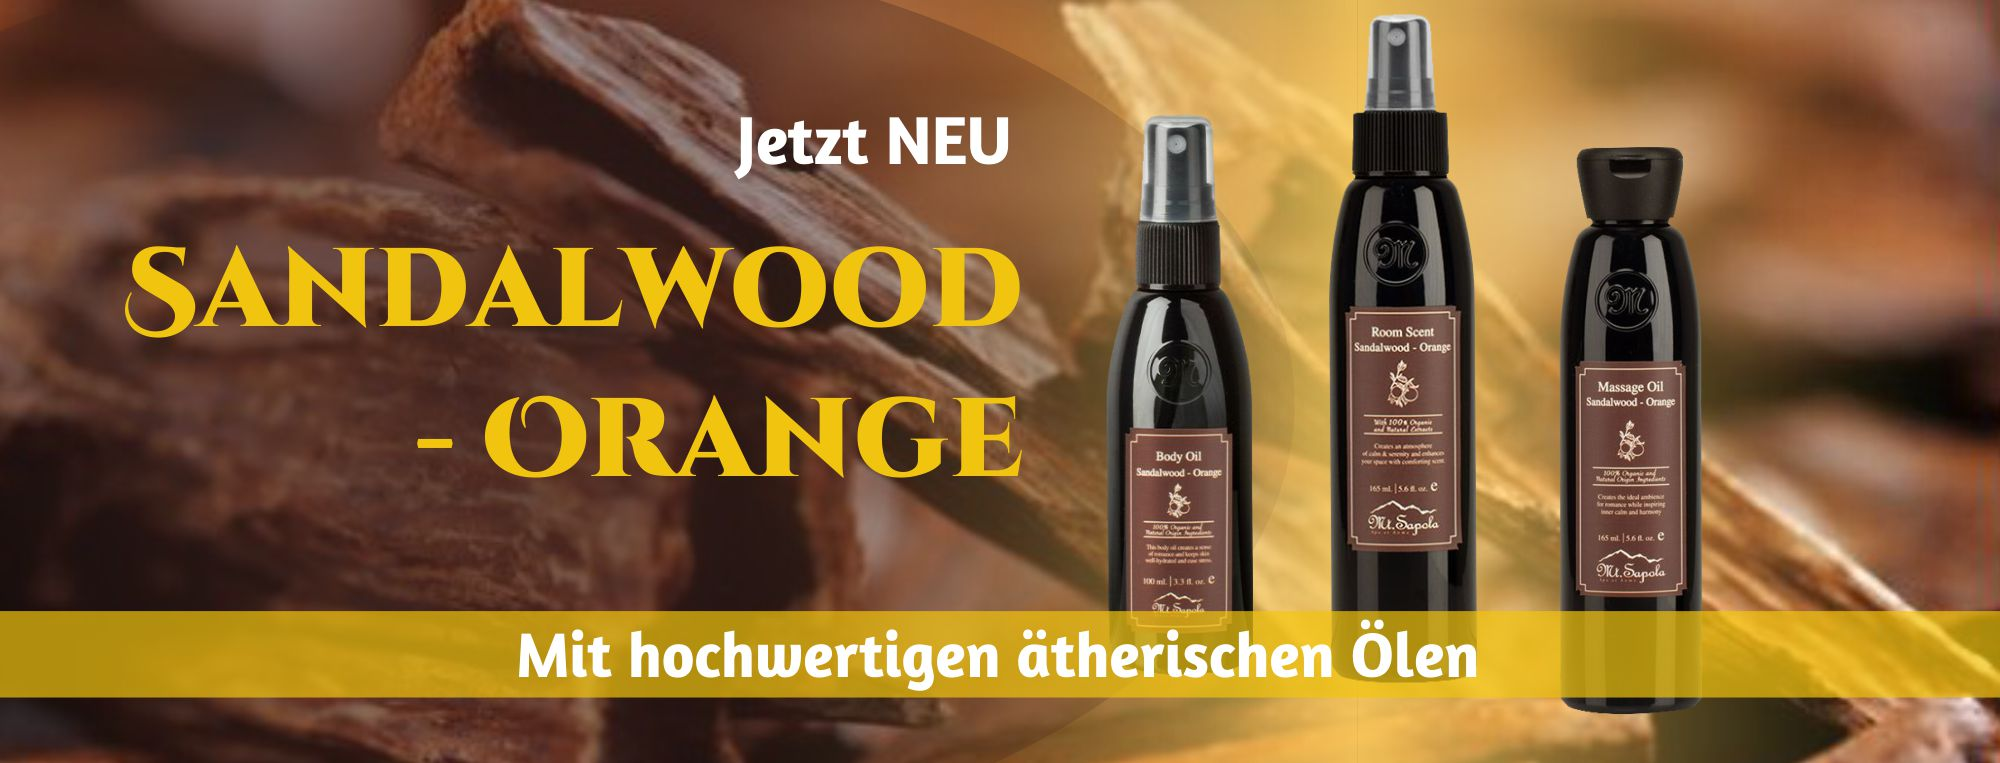 Sandalwood-Orange